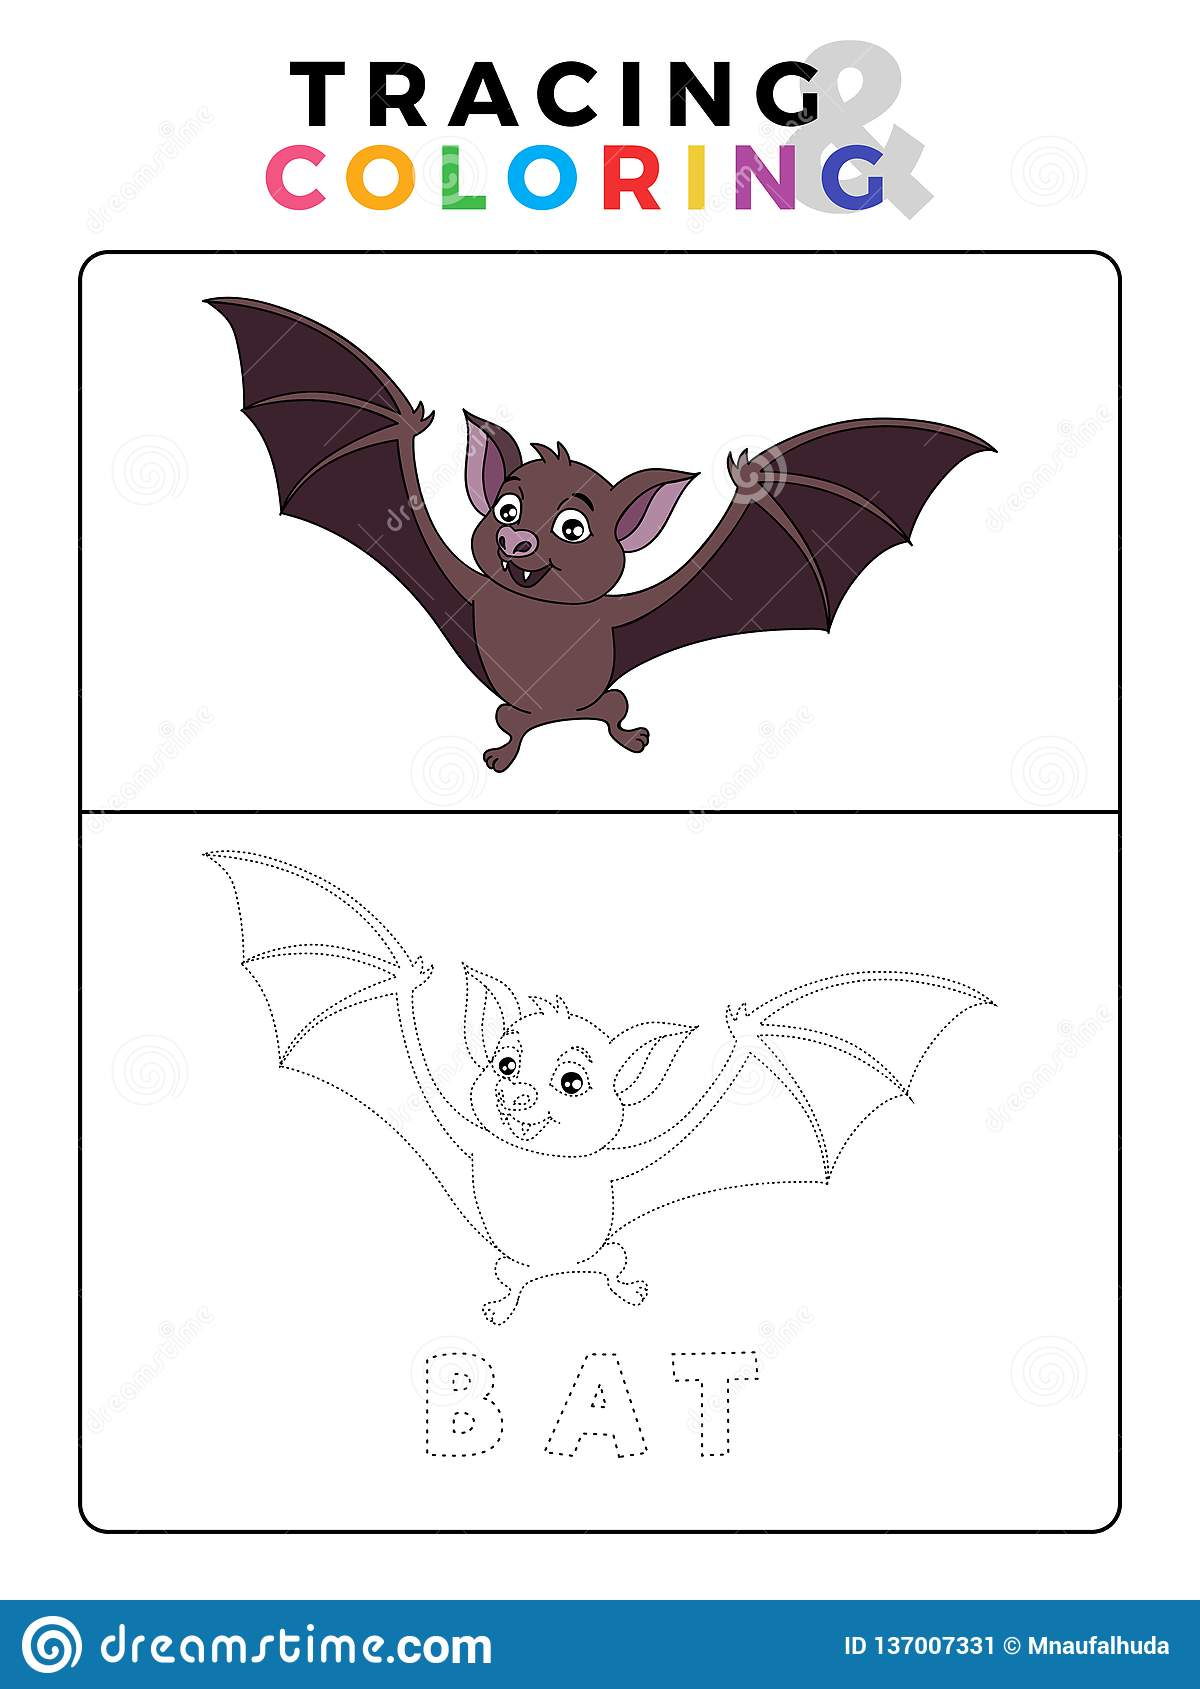 Funny Bat Tracing And Coloring Book With Example